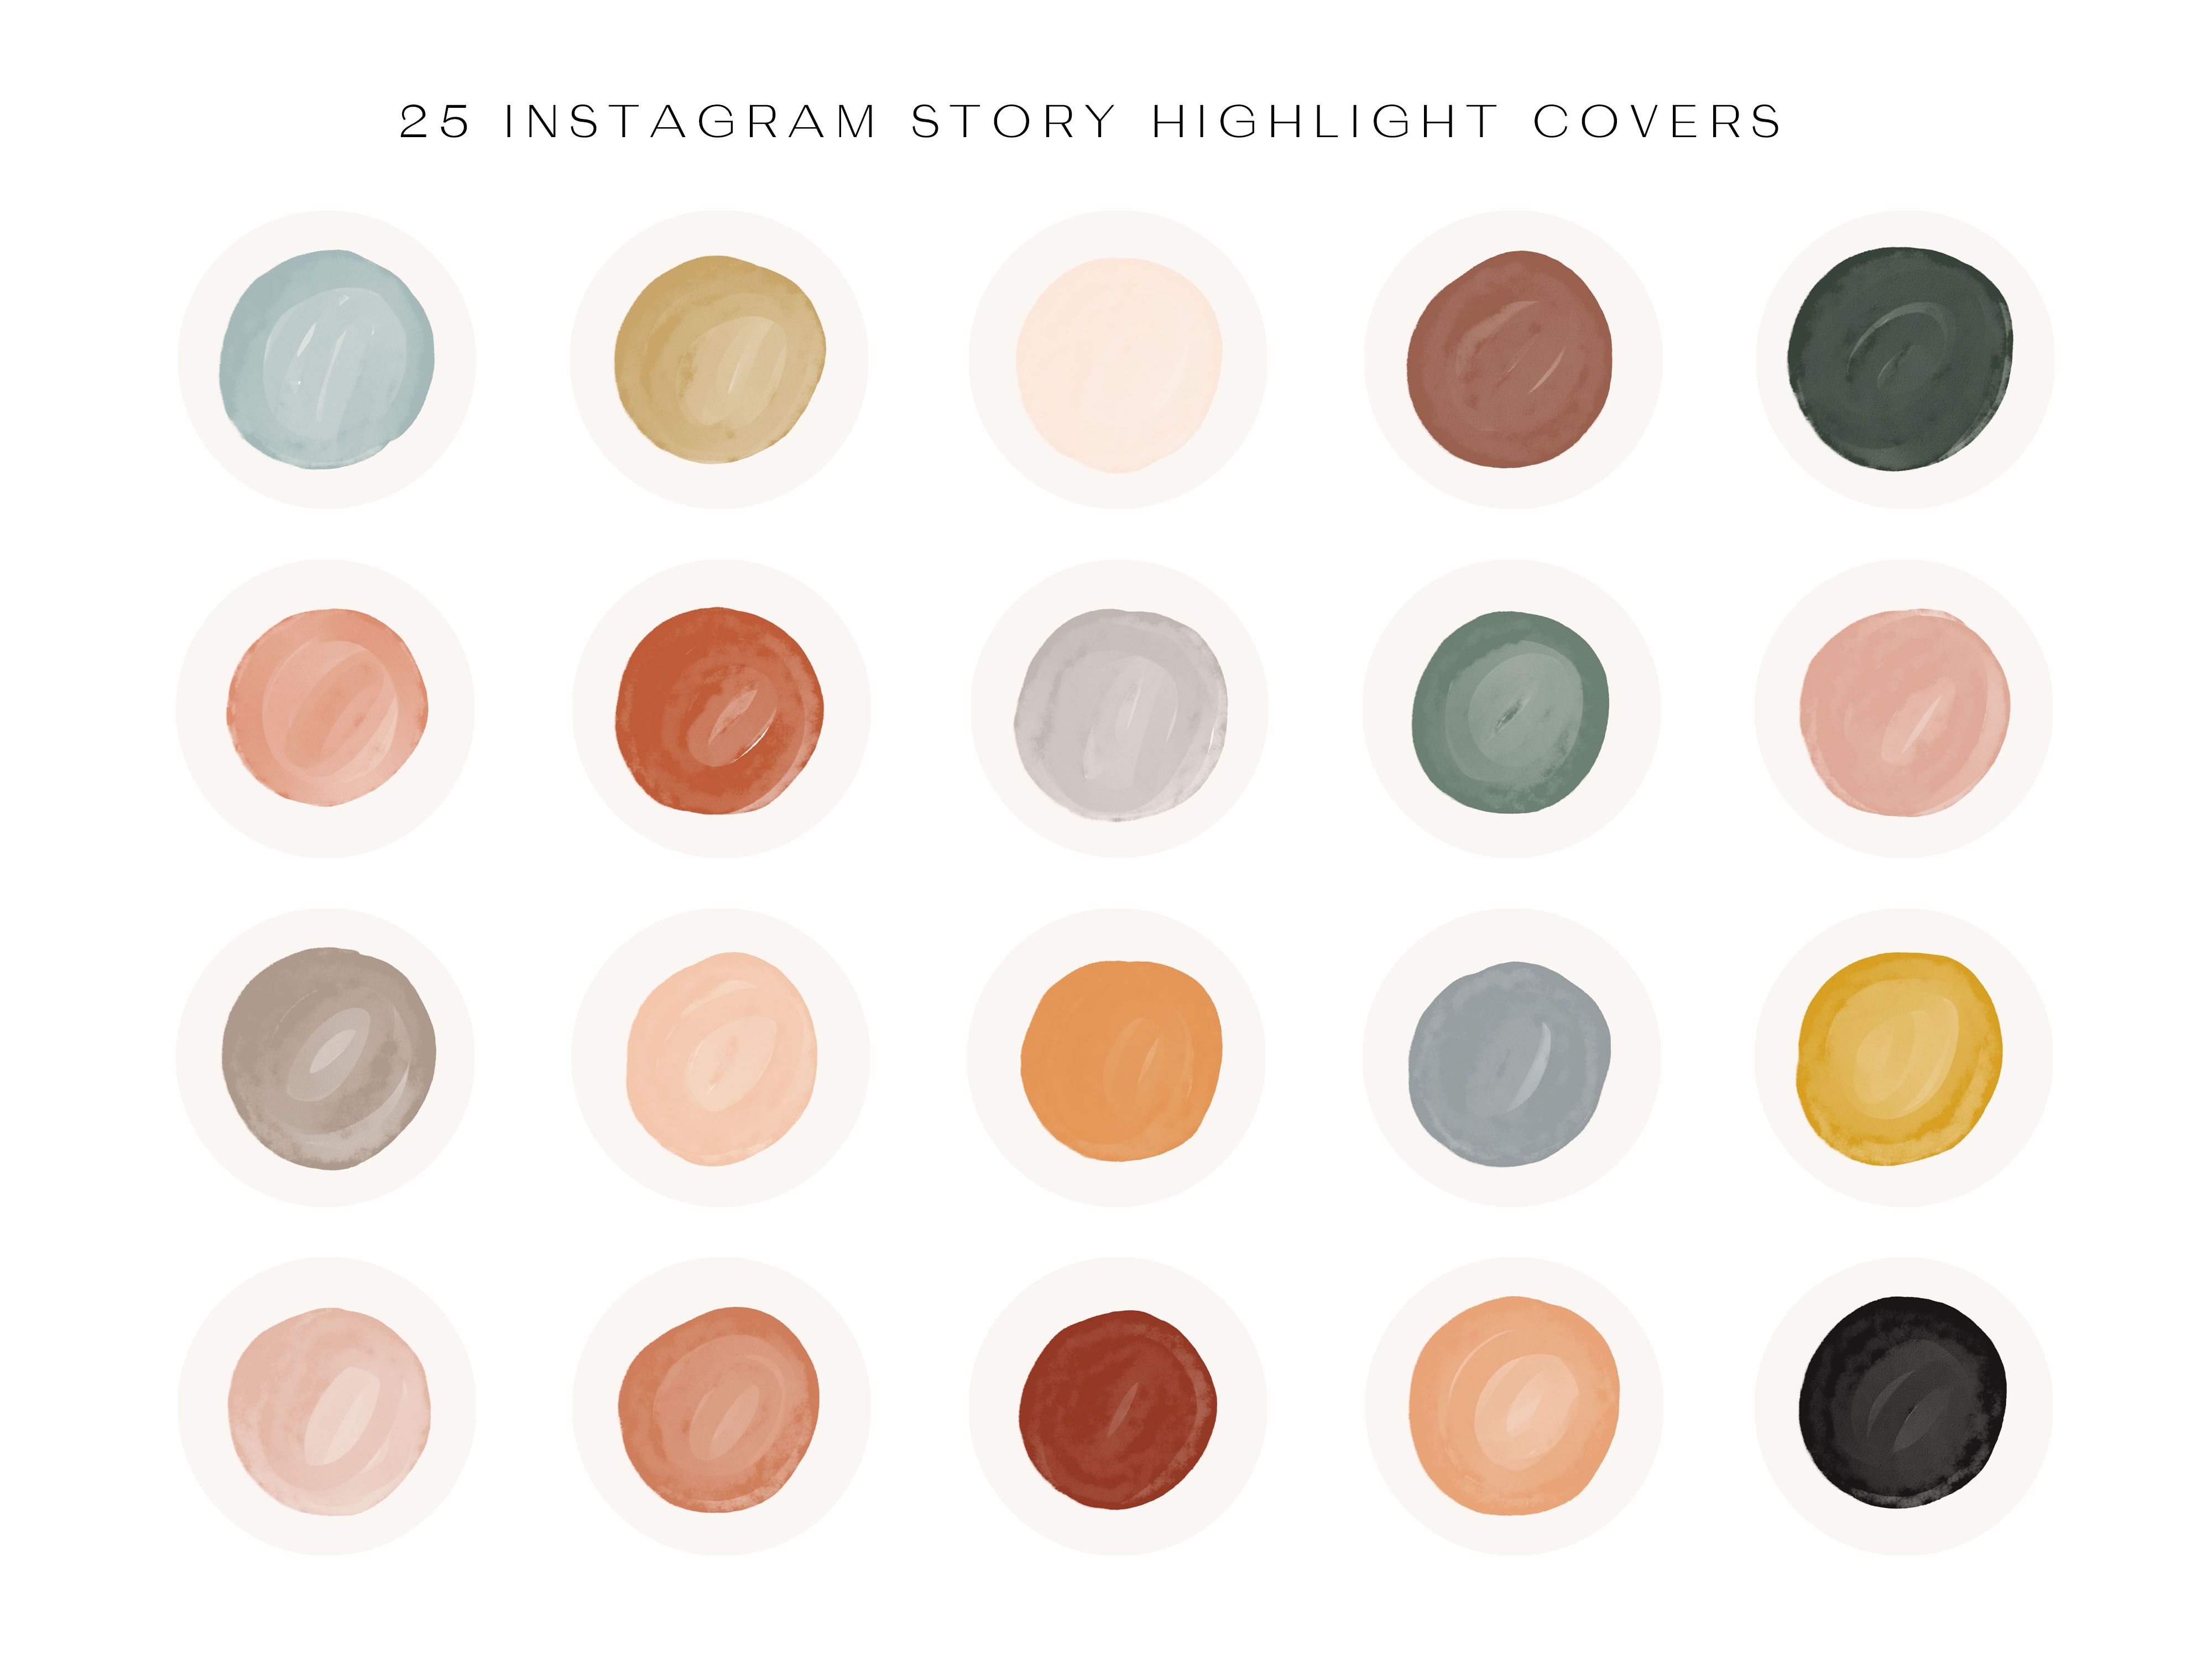 Watercolor Instagram Highlight Covers Instagram Story